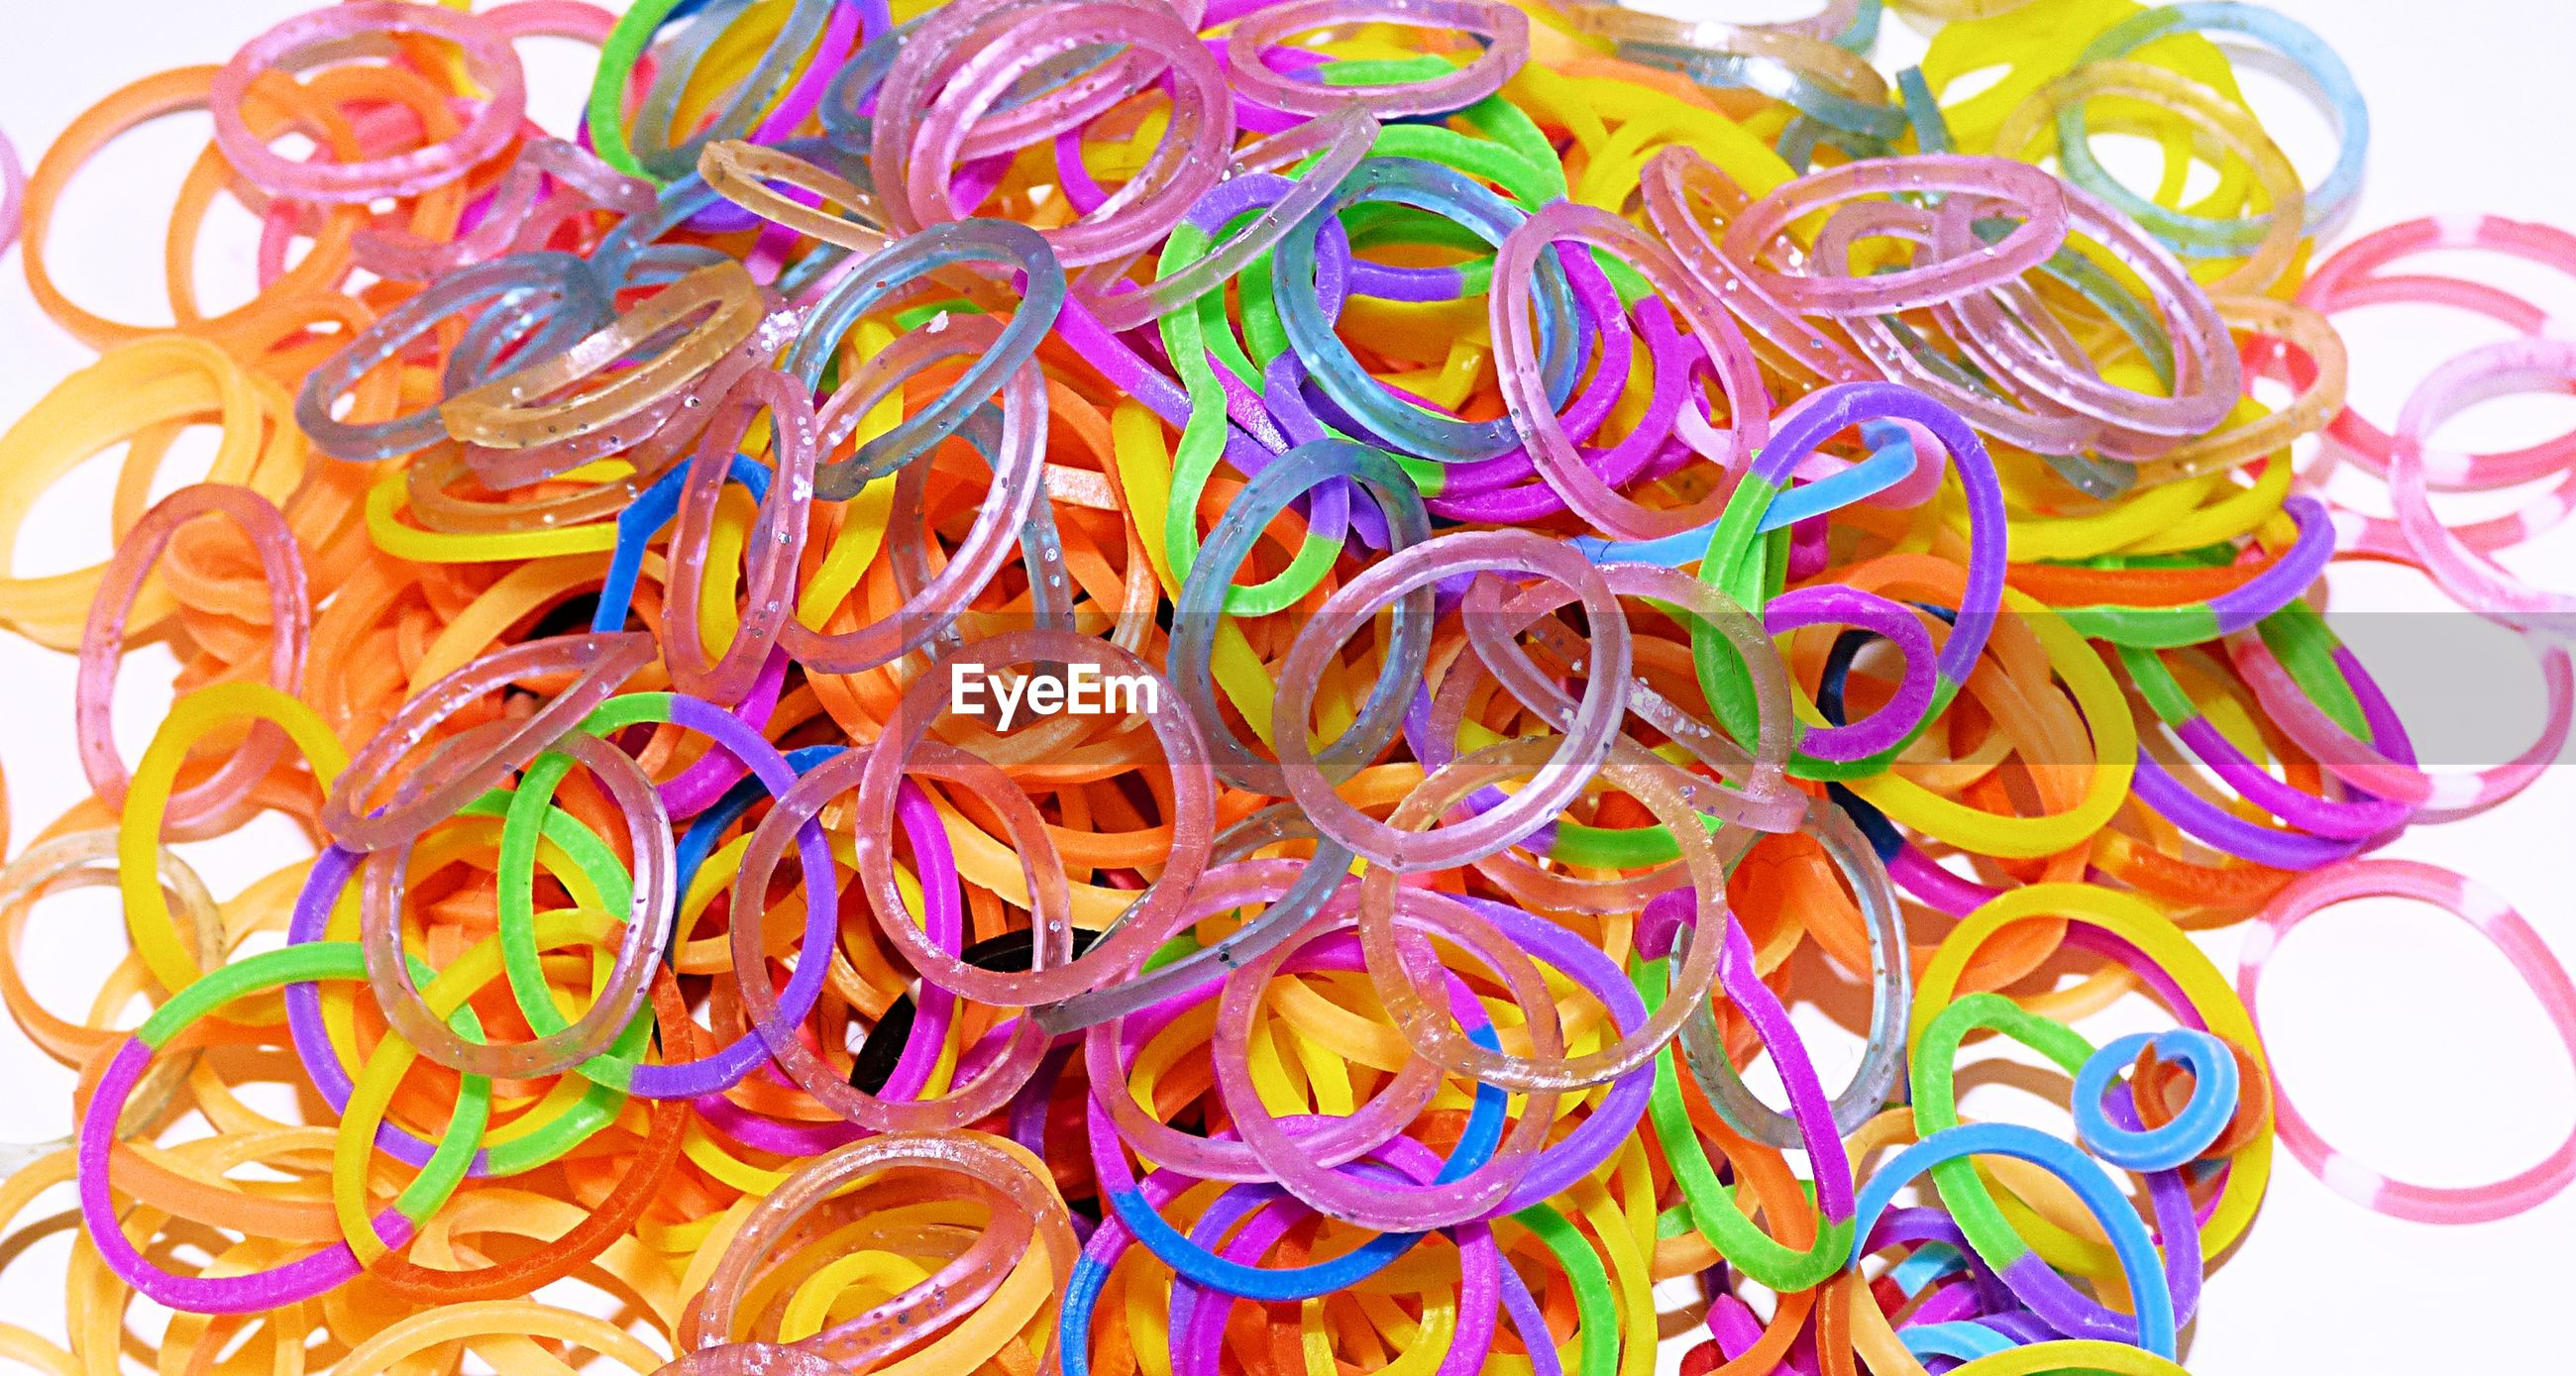 High angle view of colorful rubber bands on white background